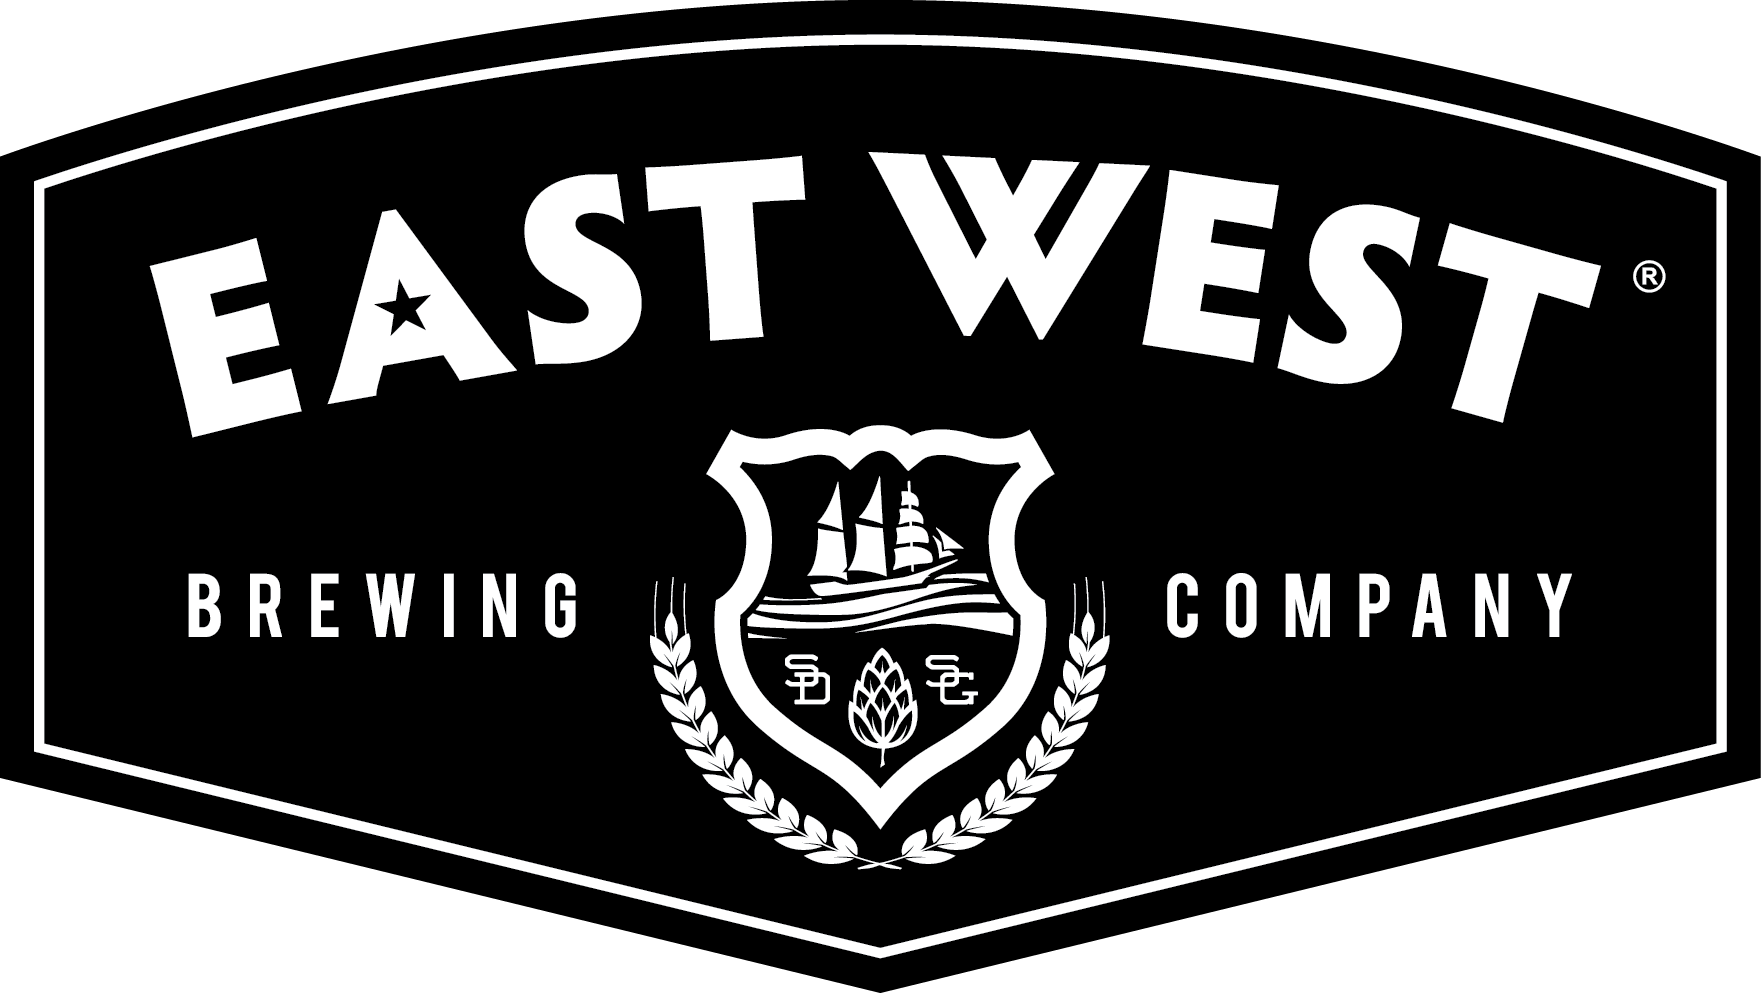 East West logo